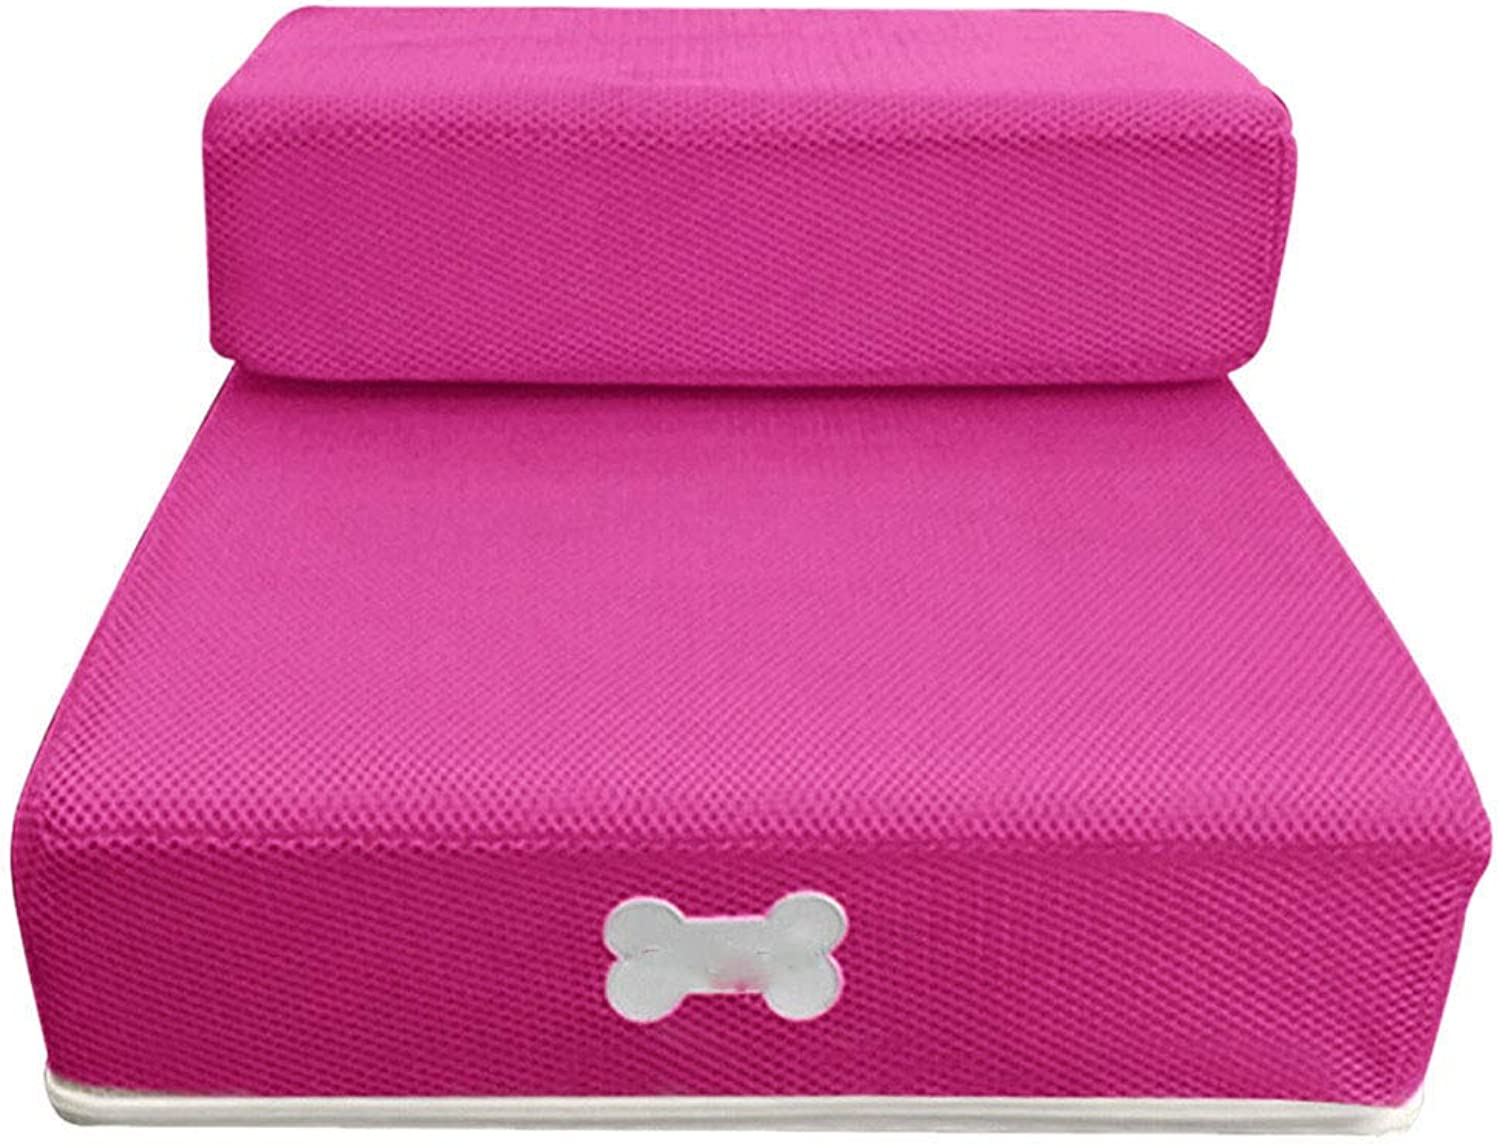 Cookisn New Pet Cat Dog Stairs Breathable Mesh Foldable Stairs Detachable Pet Bed Stairs Dog Ramp 2 Steps L Cama Perro Hot Pink 50 x30 x 10cm